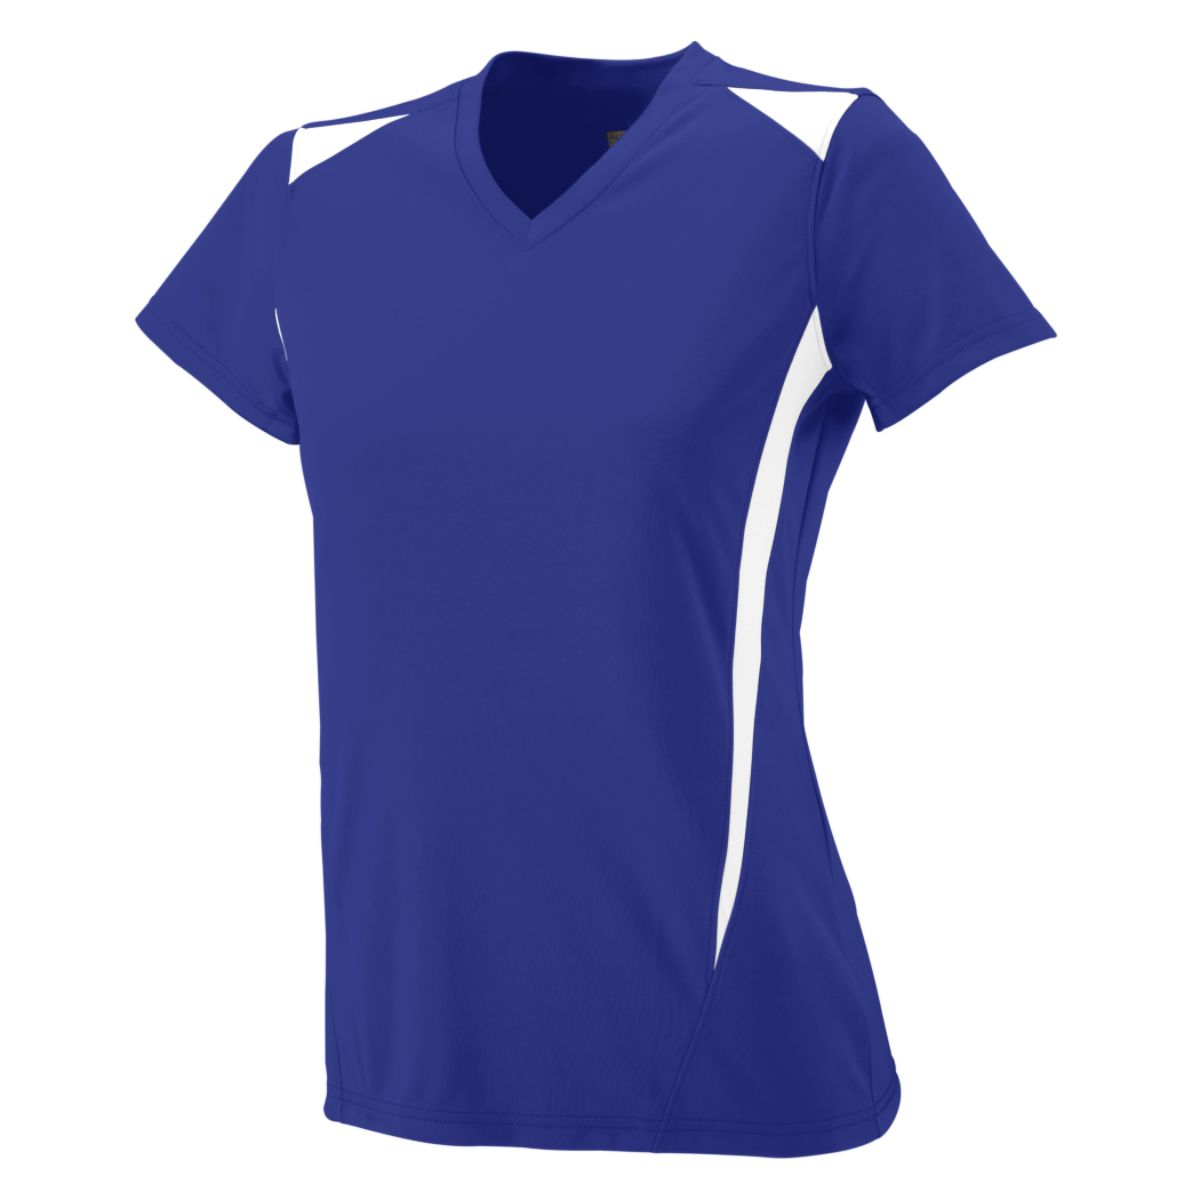 Augusta Ladies Premier Jersey Pur/Whi 2Xl - image 1 of 1